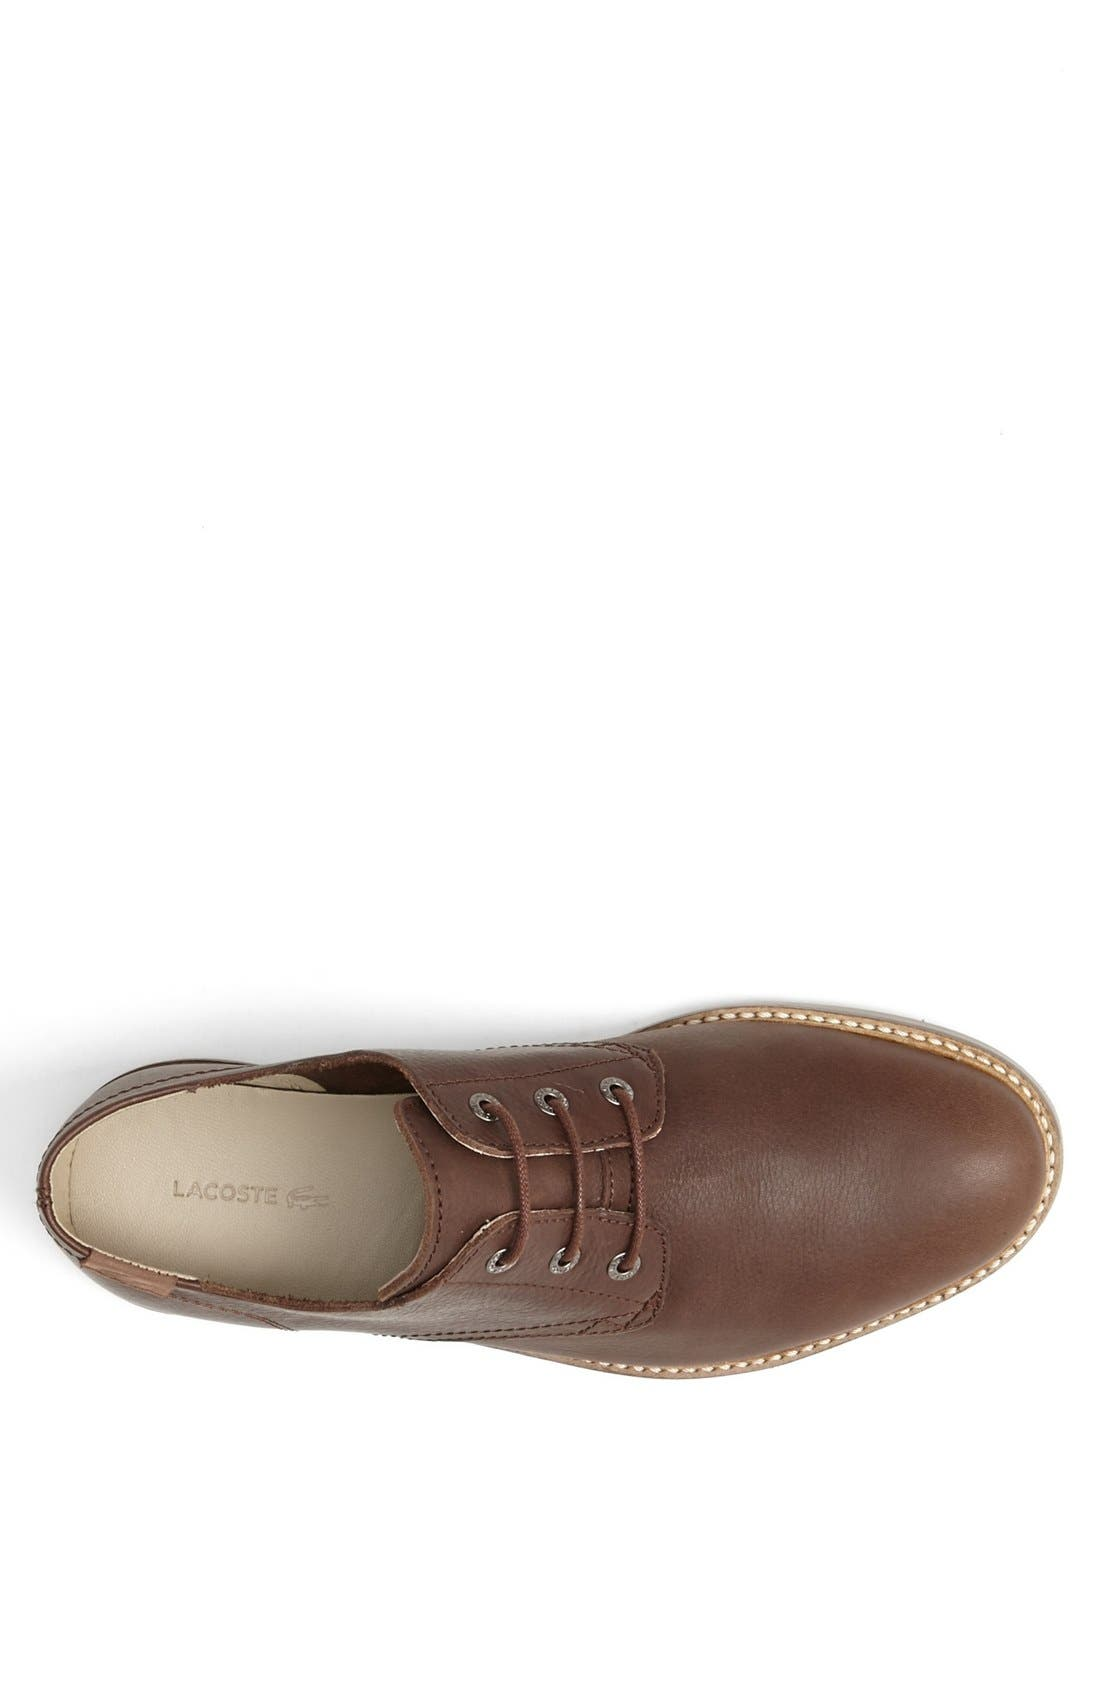 Alternate Image 3  - Lacoste 'Sherbrooke 6' Oxford